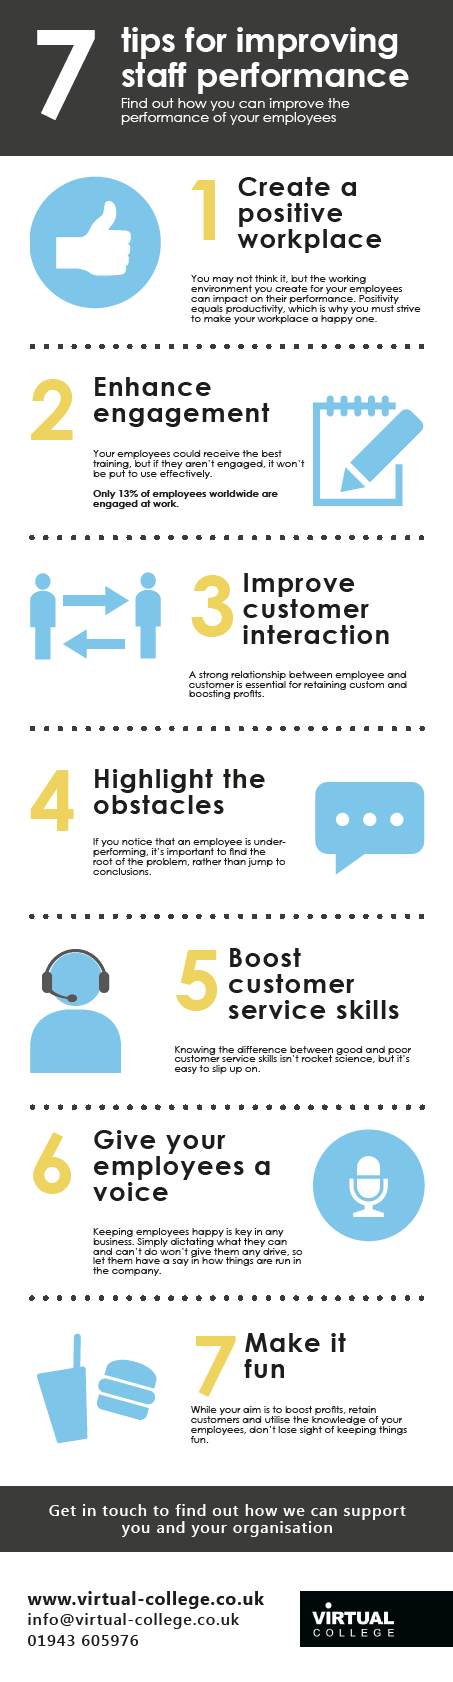 7 Tips for Improving Staff Performance Infographic